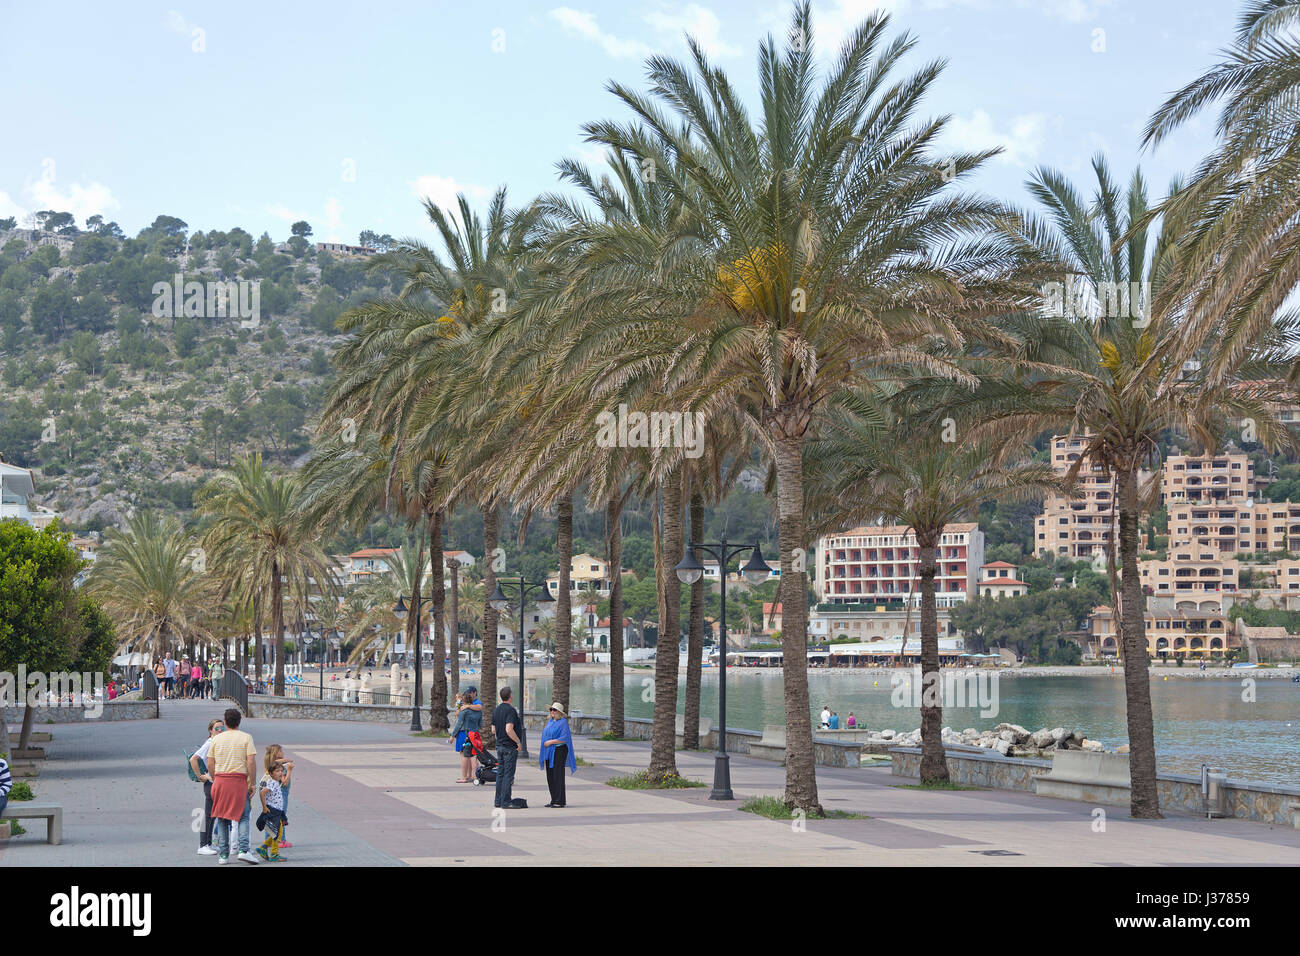 seafront in Port de Sóller, Mallorca, Spain - Stock Image